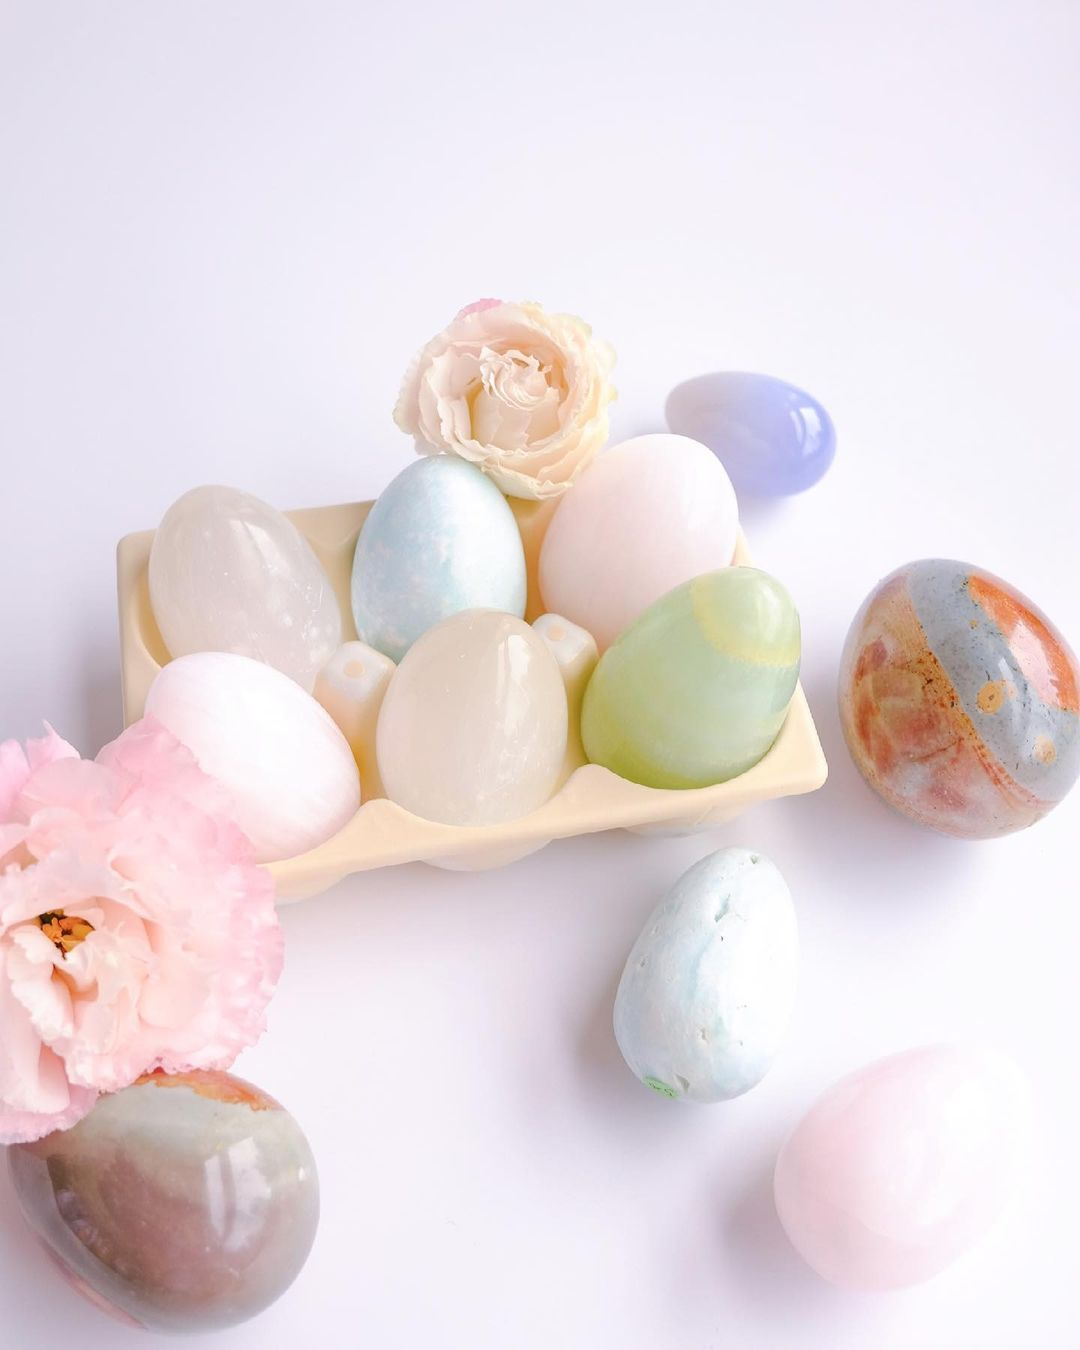 The Best Healing Crystals For Each Zodiac Sign